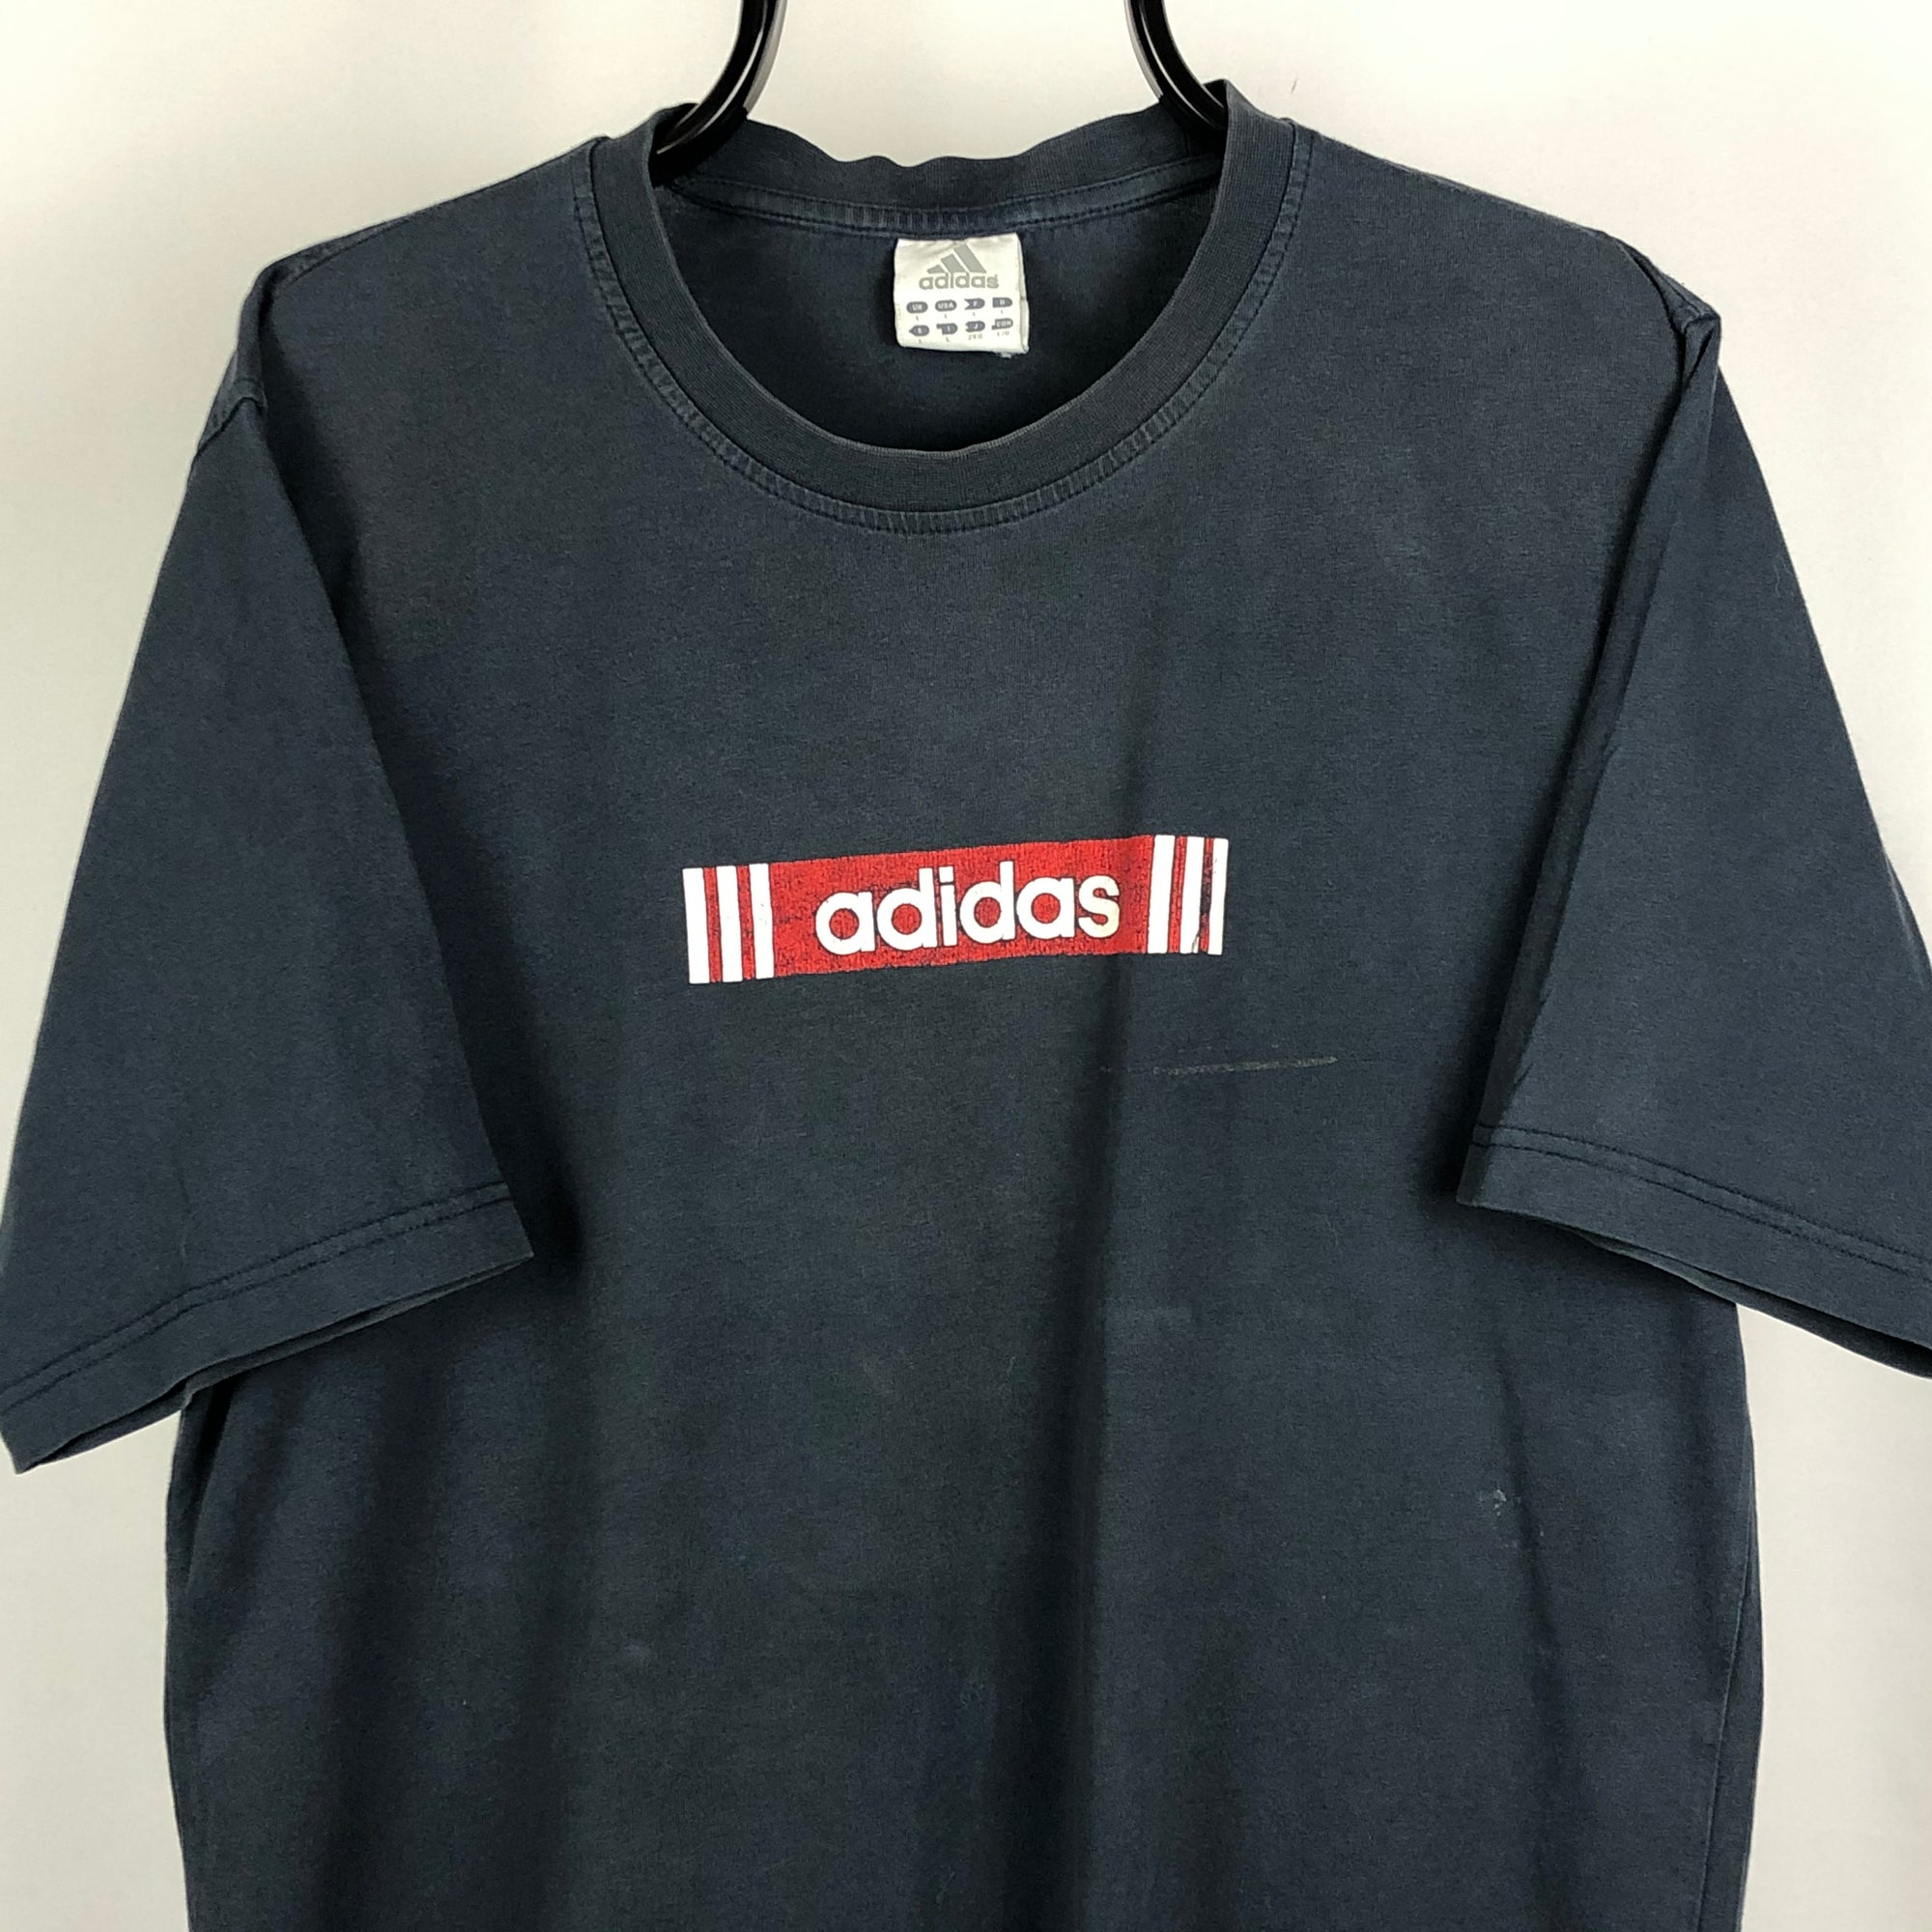 Vintage Adidas Spellout Tee - Men's Large/Women's XL